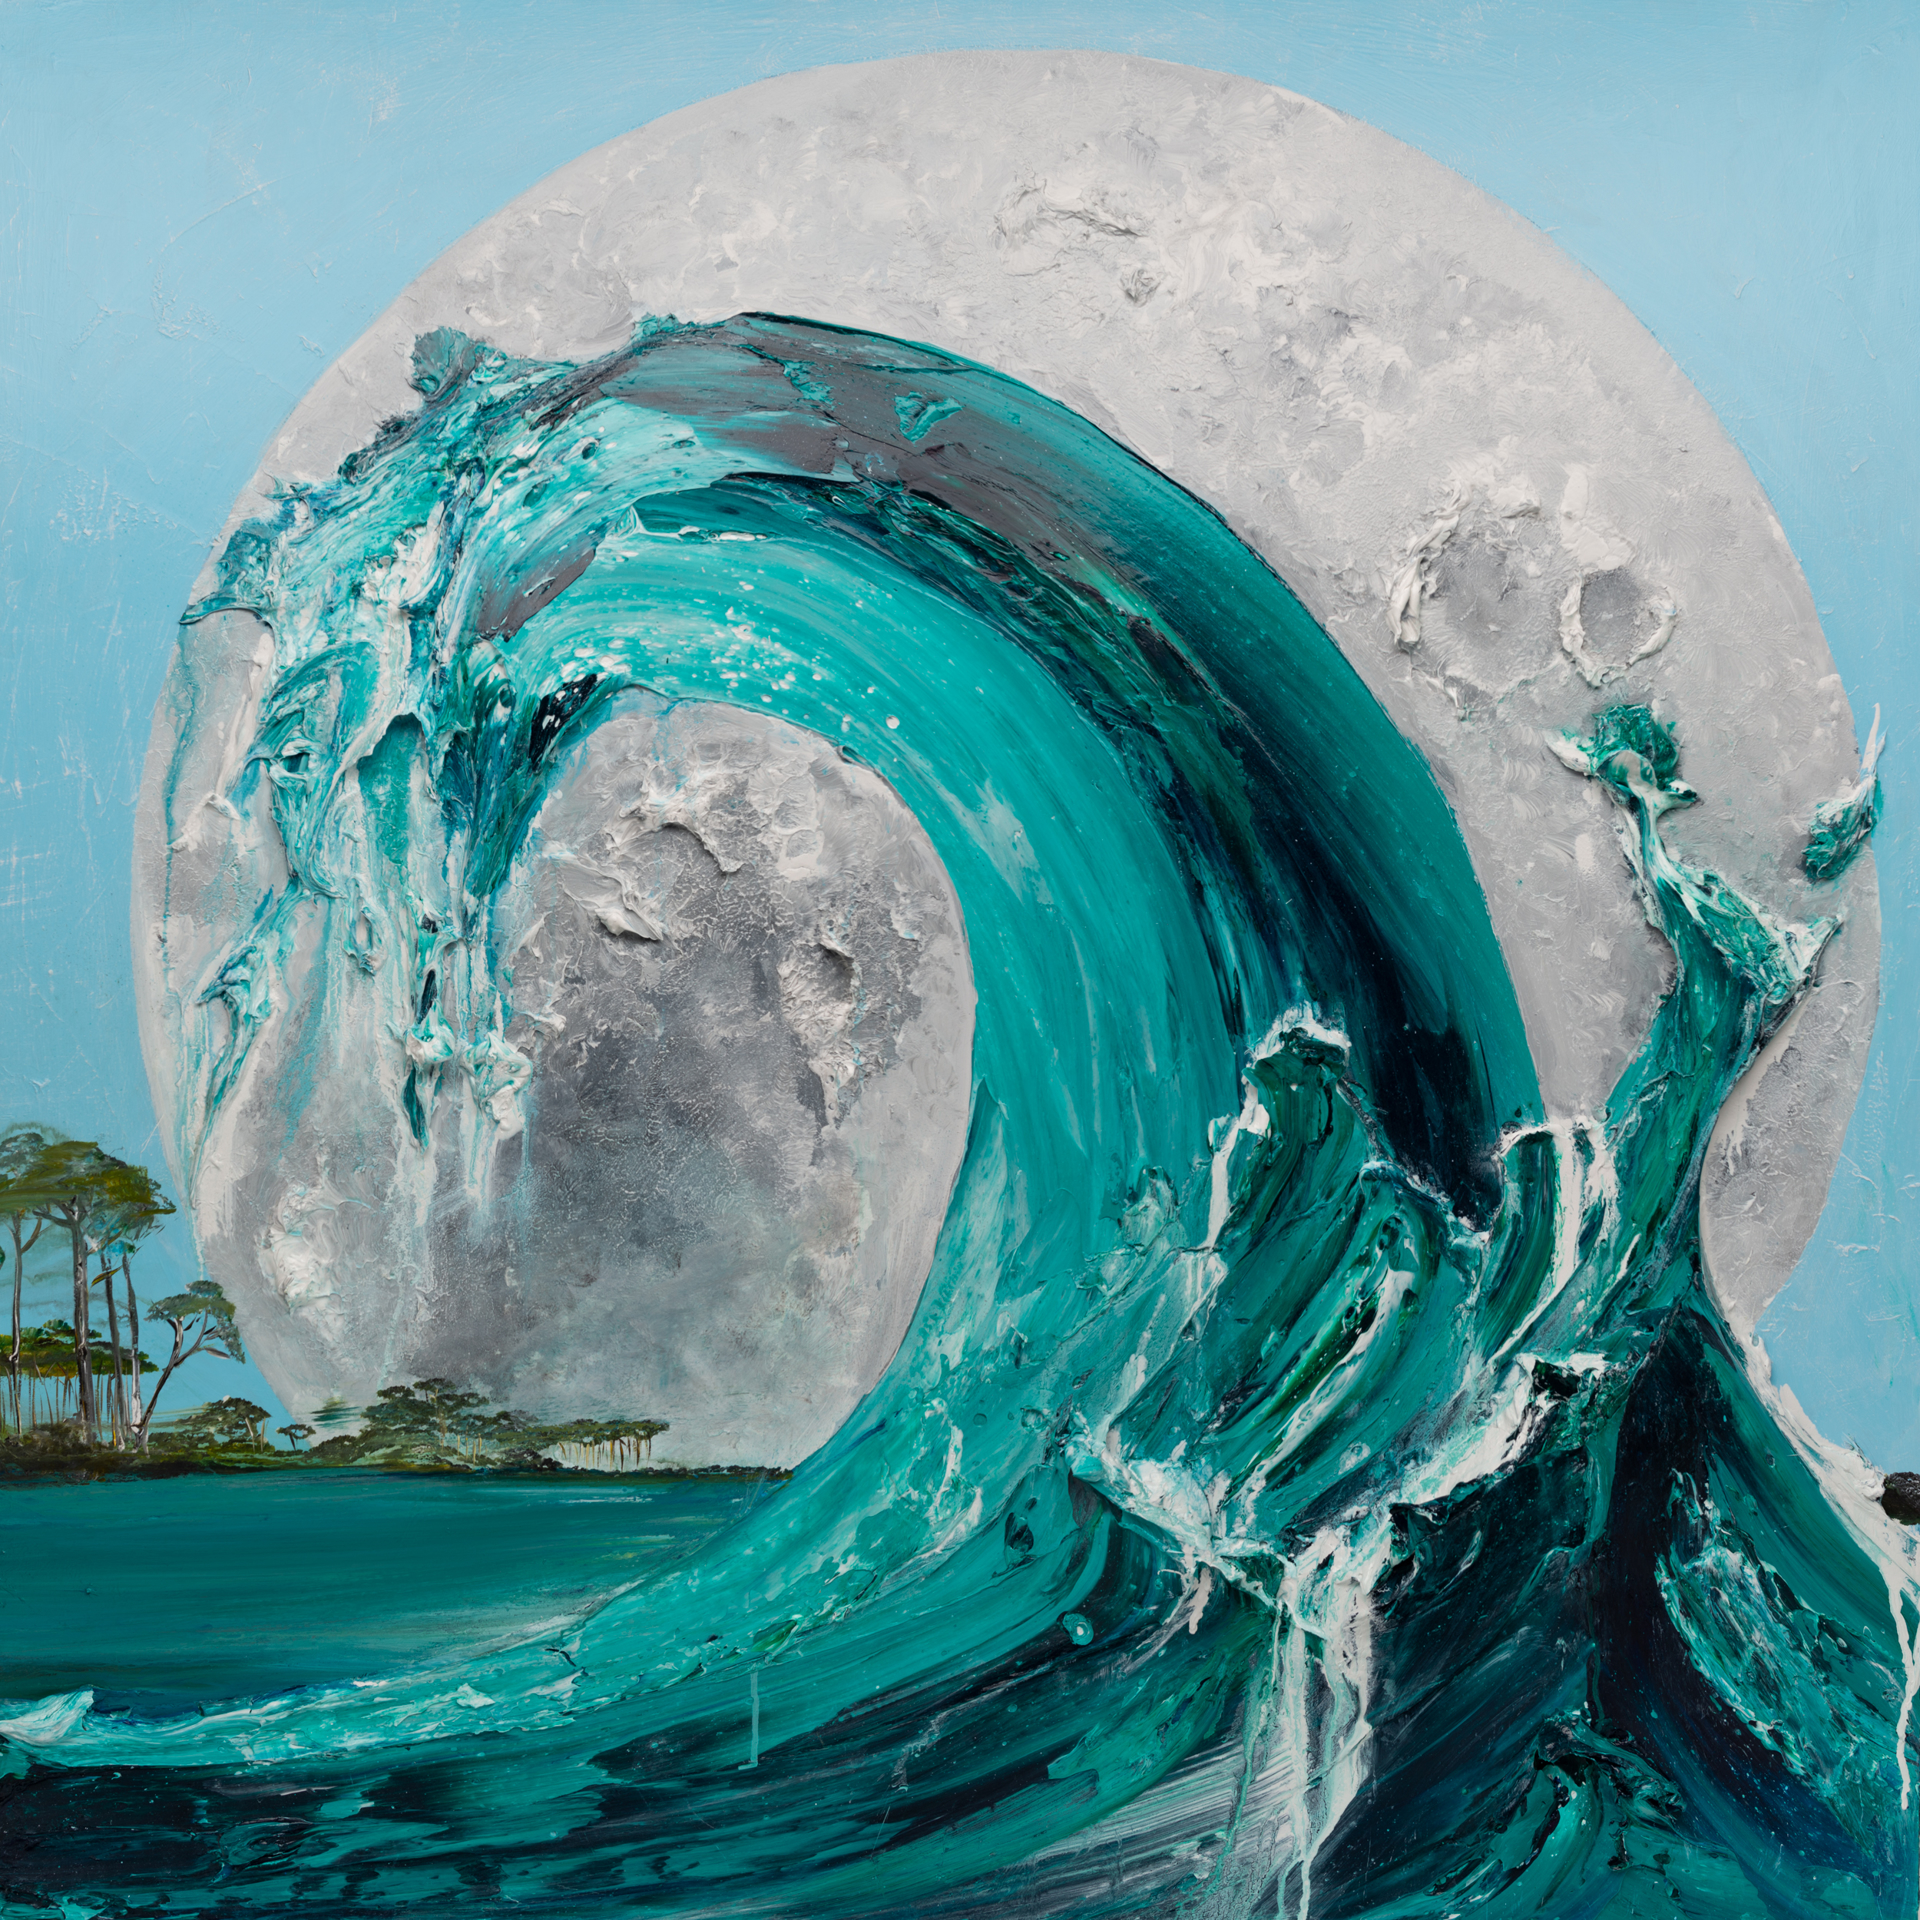 WAVE MOON 1 MS-48X48-2019-311 by JUSTIN GAFFREY